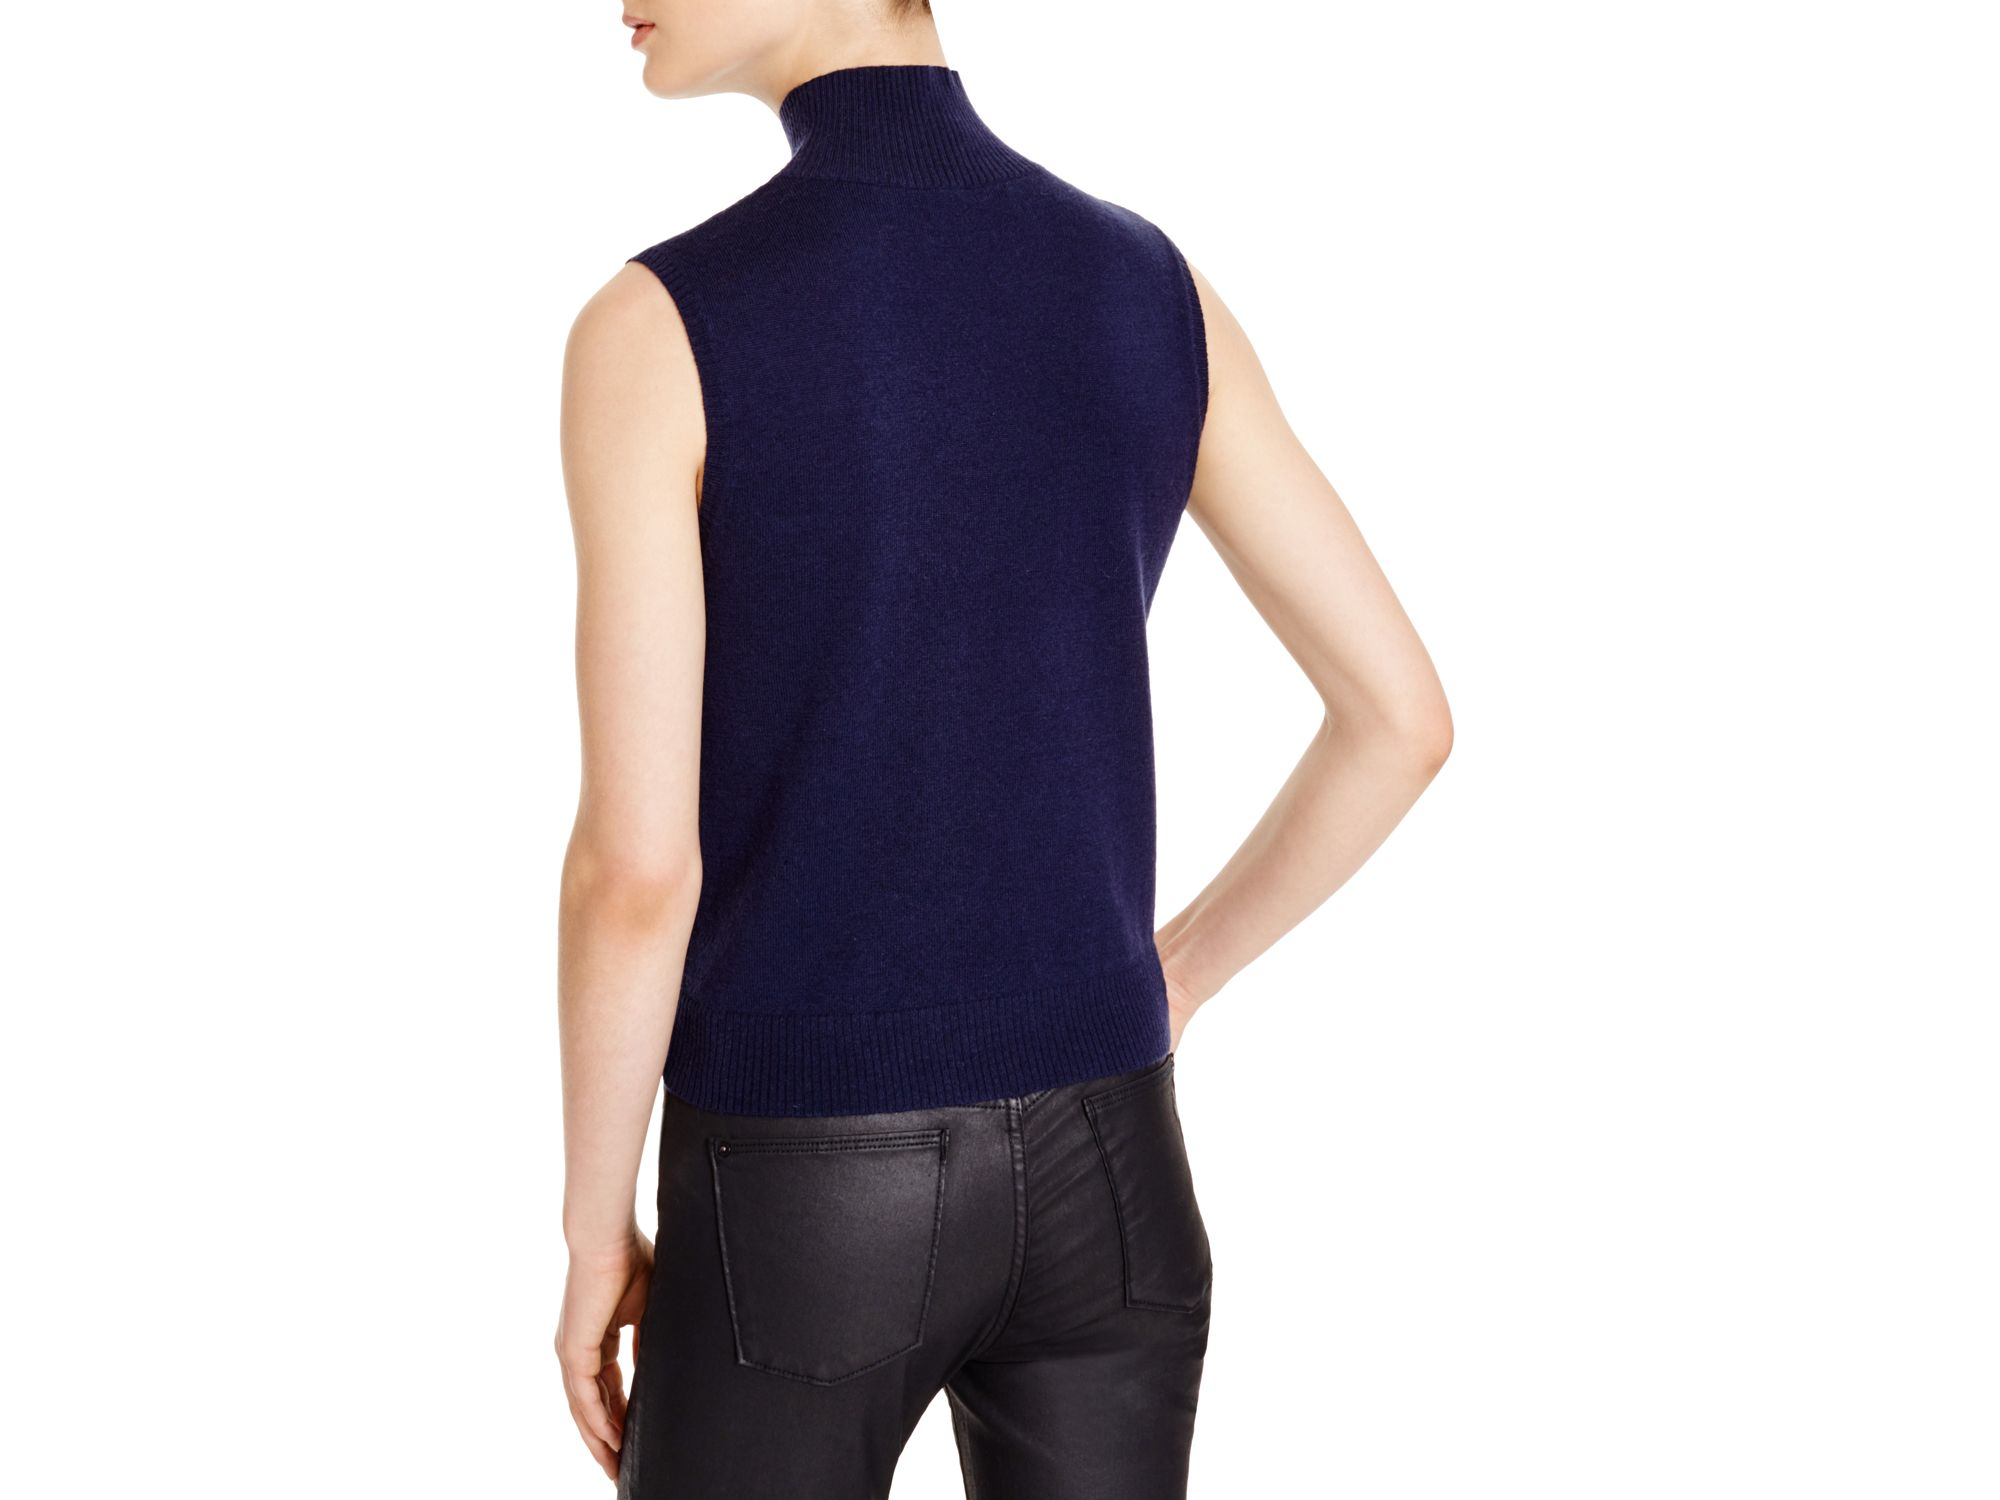 Timo weiland Sleeveless Turtleneck Sweater in Blue | Lyst